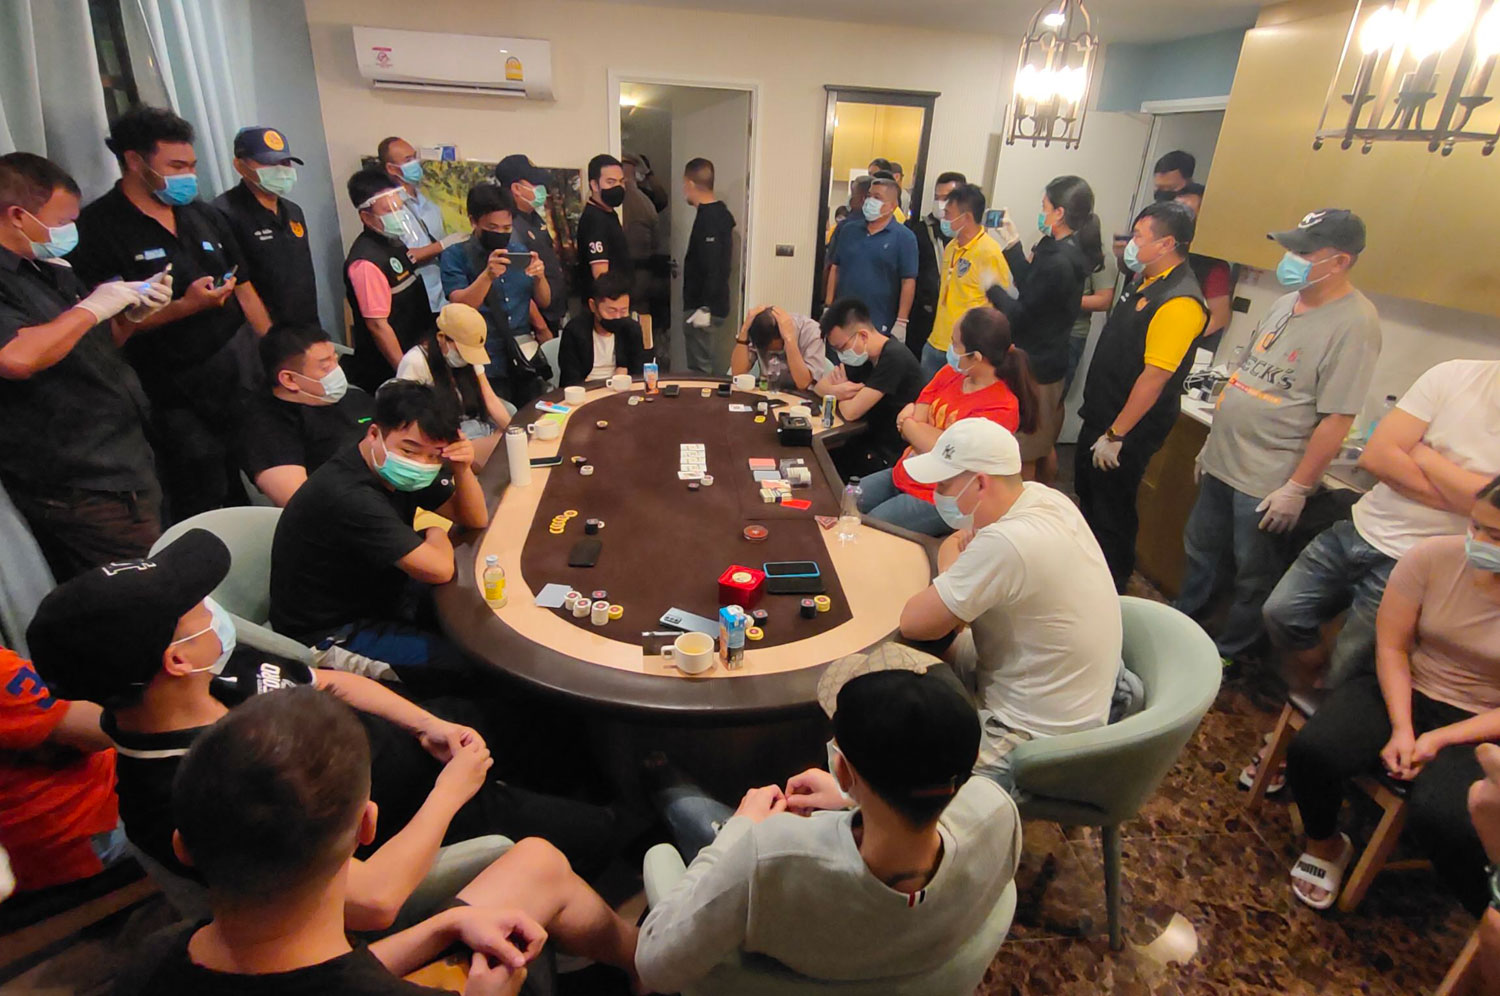 Many gamblers, both Thais and foreigners, are found inside two rooms at a condominium on Jomtien Sai 2 Road in Pattaya, Chon Buri province, during a police raid in the early hours of Saturday. (Photo by Chaiyot Pupattanapong)